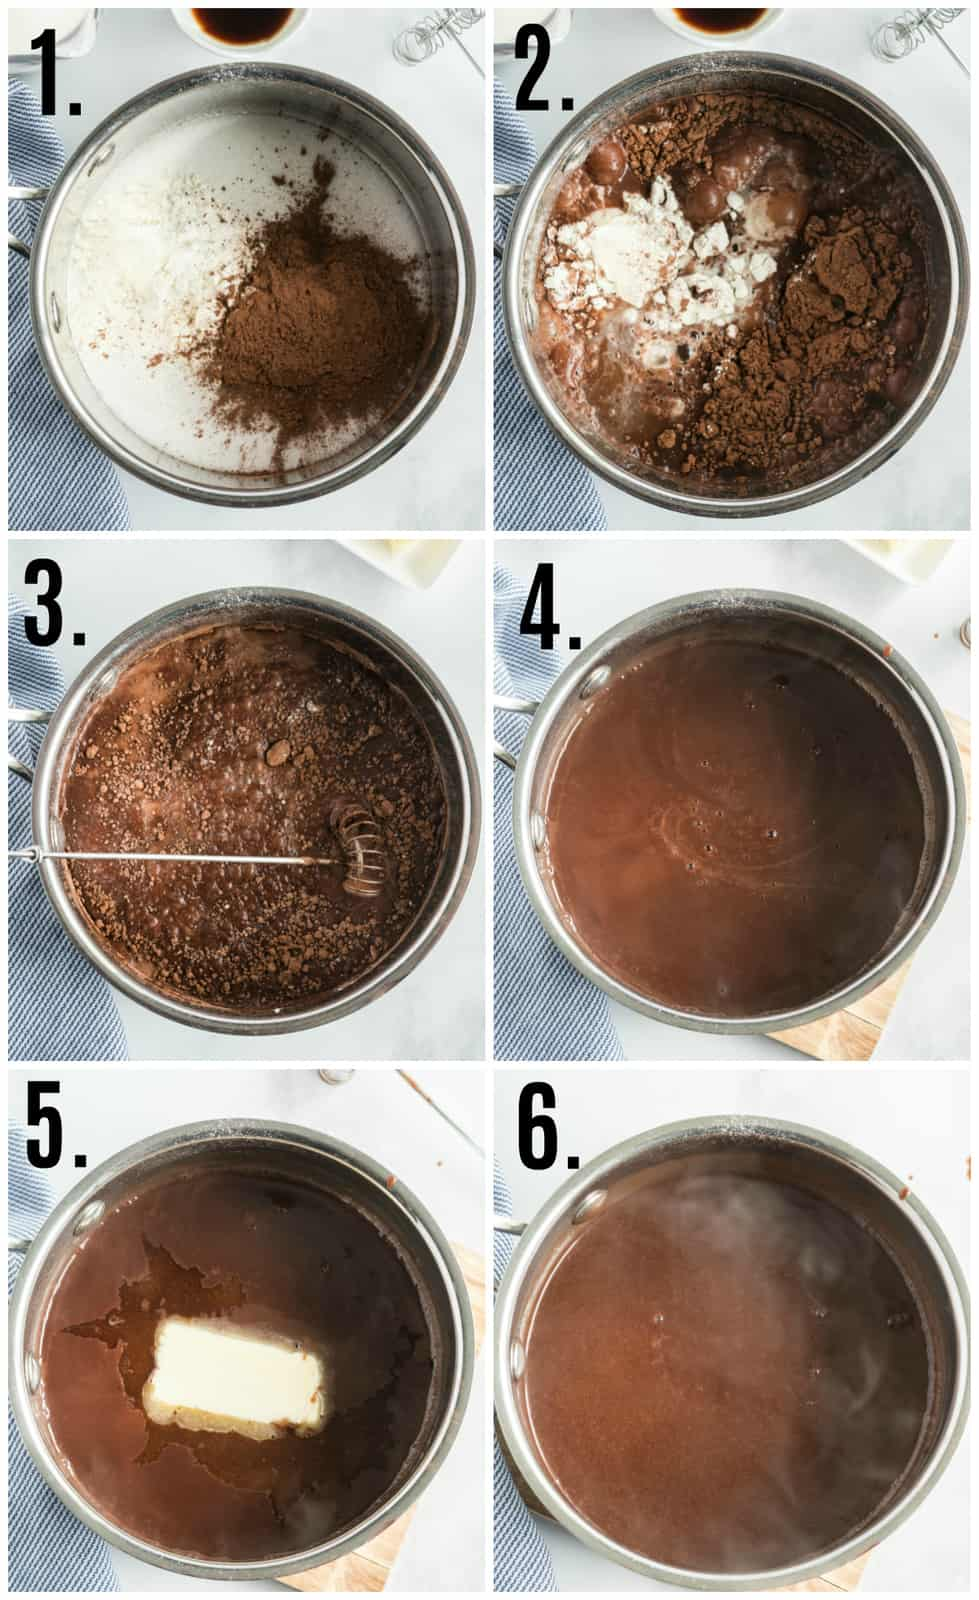 Step by step photos photos on how to make Chocolate Gravy